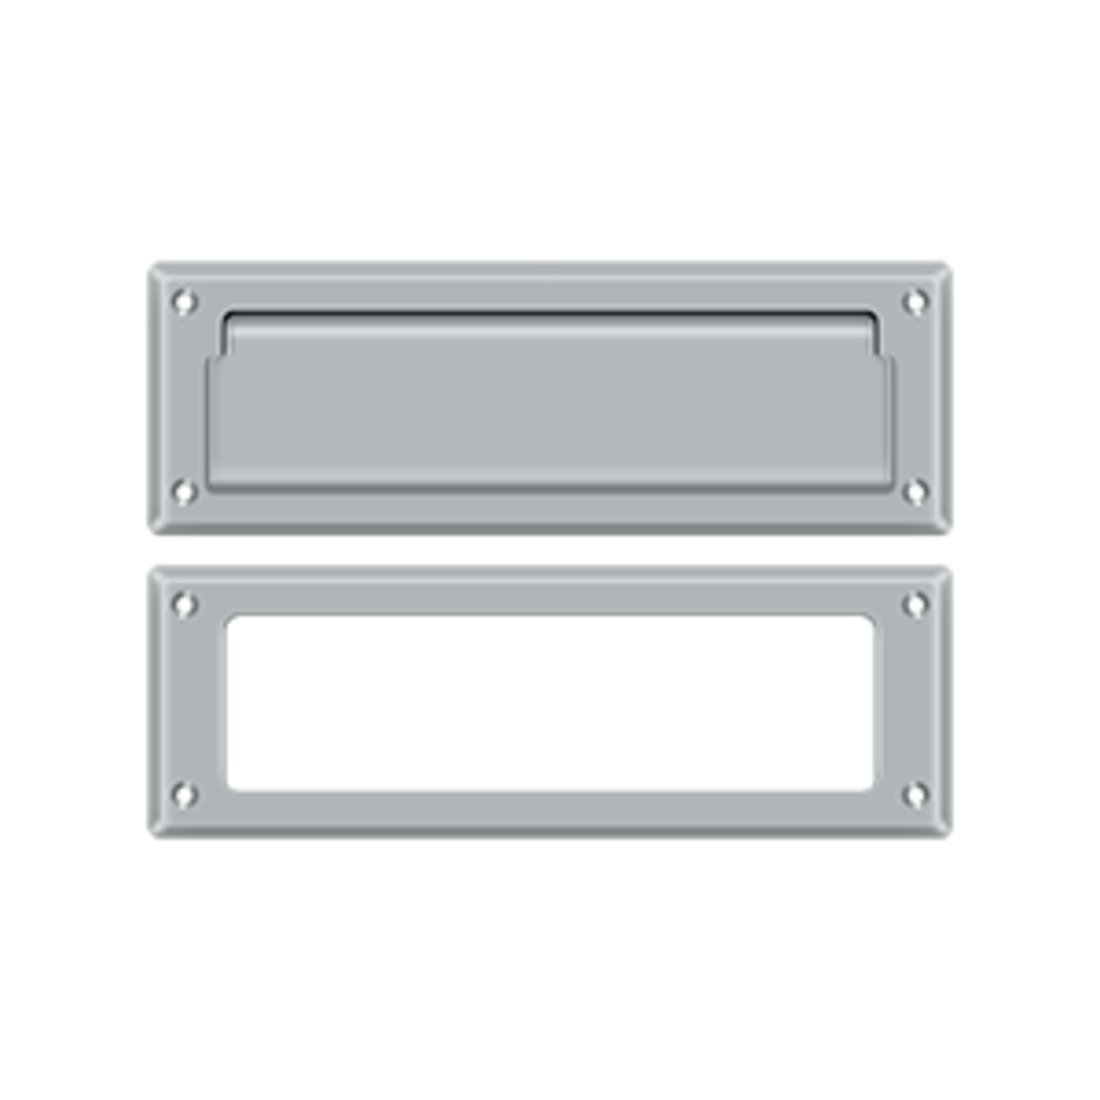 Deltana MS626 8-7/8 Inch Wide Solid Brass Mail Slot with Interior Frame, Brushed Chrome